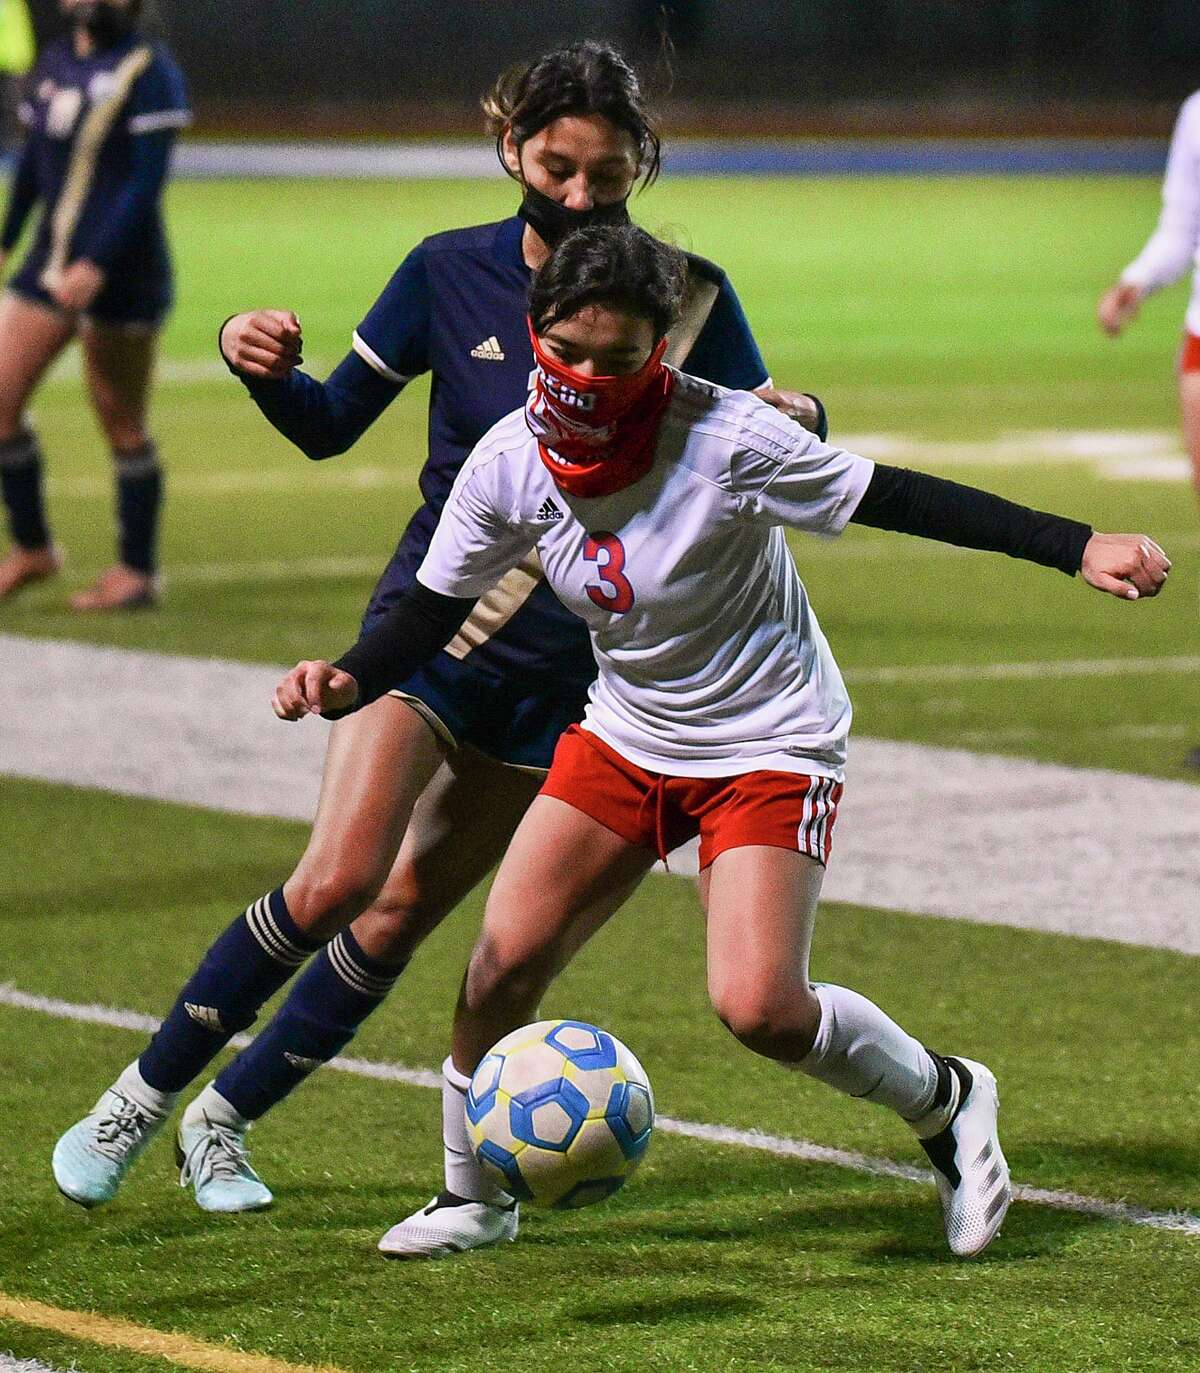 After falling 1-0 Tuesday against Alexander, Katherine Delgadillo and Martin will have to wait weeks until their next game with LISD canceling all remaining non-district games.